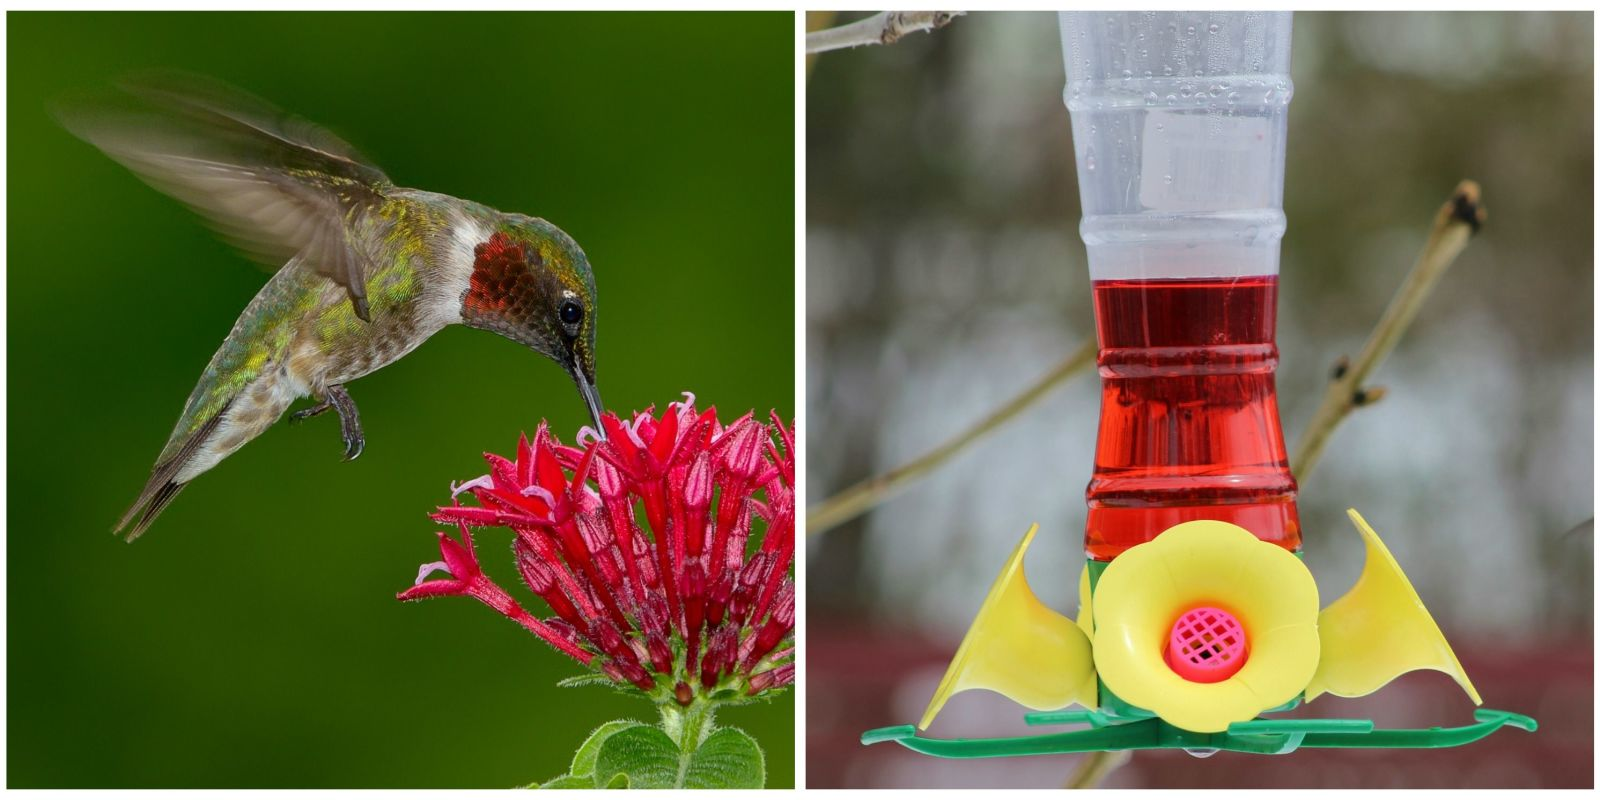 red dye nectar might be killing hummingbirds red dye nectar should you put red food coloring in hummingbird food can you add red food coloring to hummingbird food